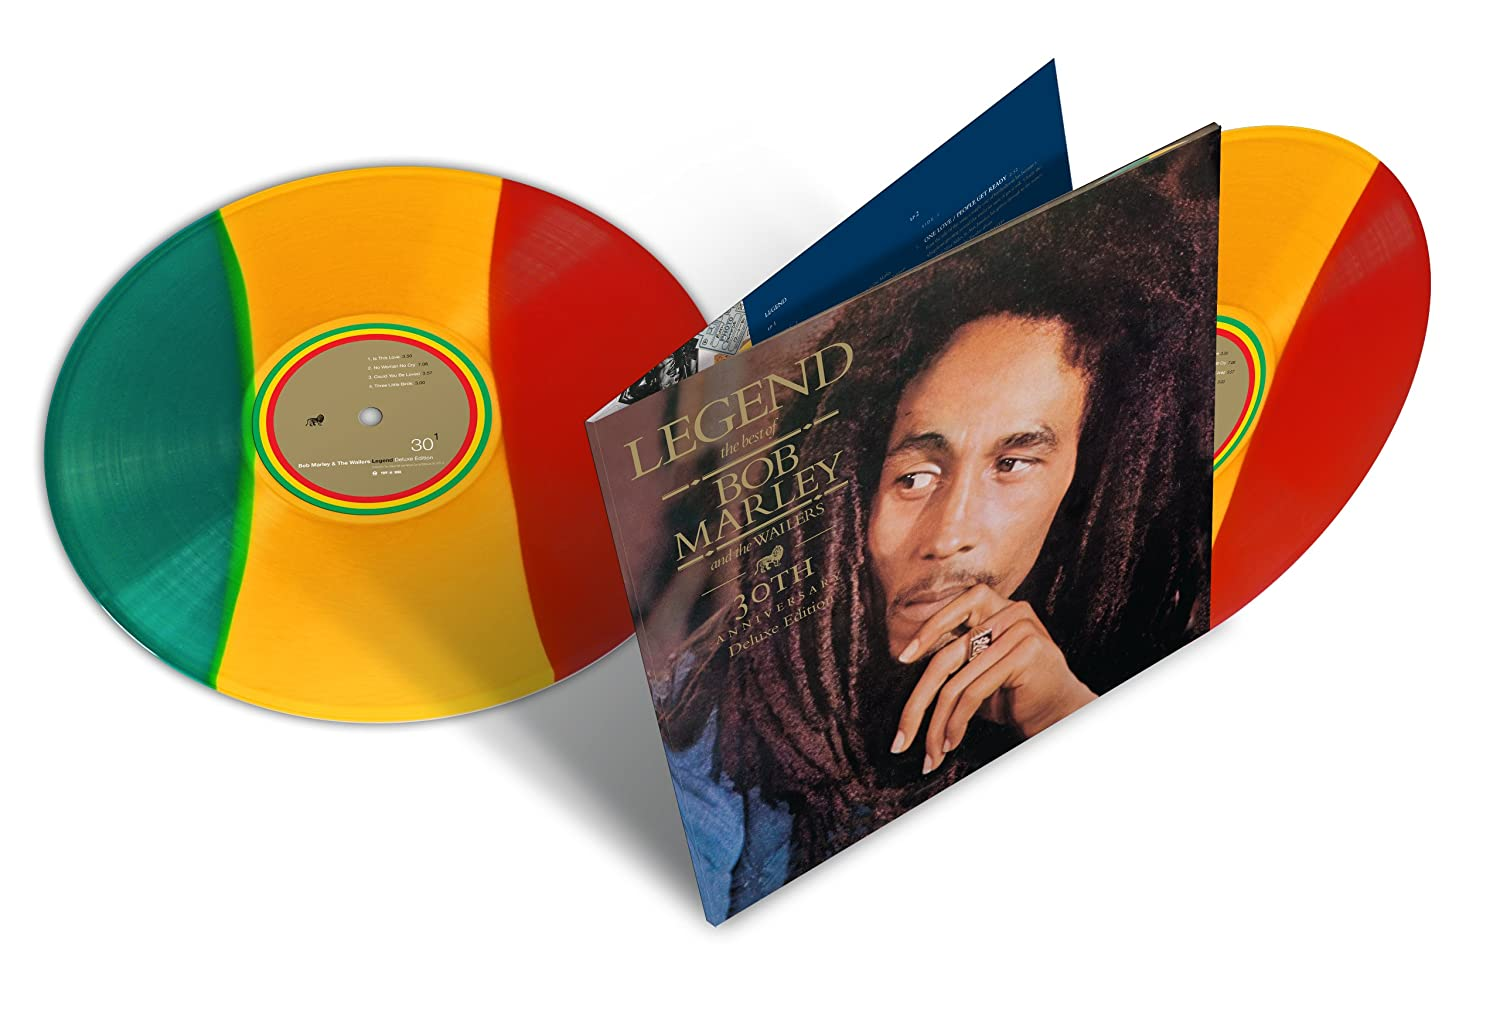 Bob marley and the wailers legend 30th anniversary edition tri bob marley and the wailers legend 30th anniversary edition tri color 2 lp amazon music thecheapjerseys